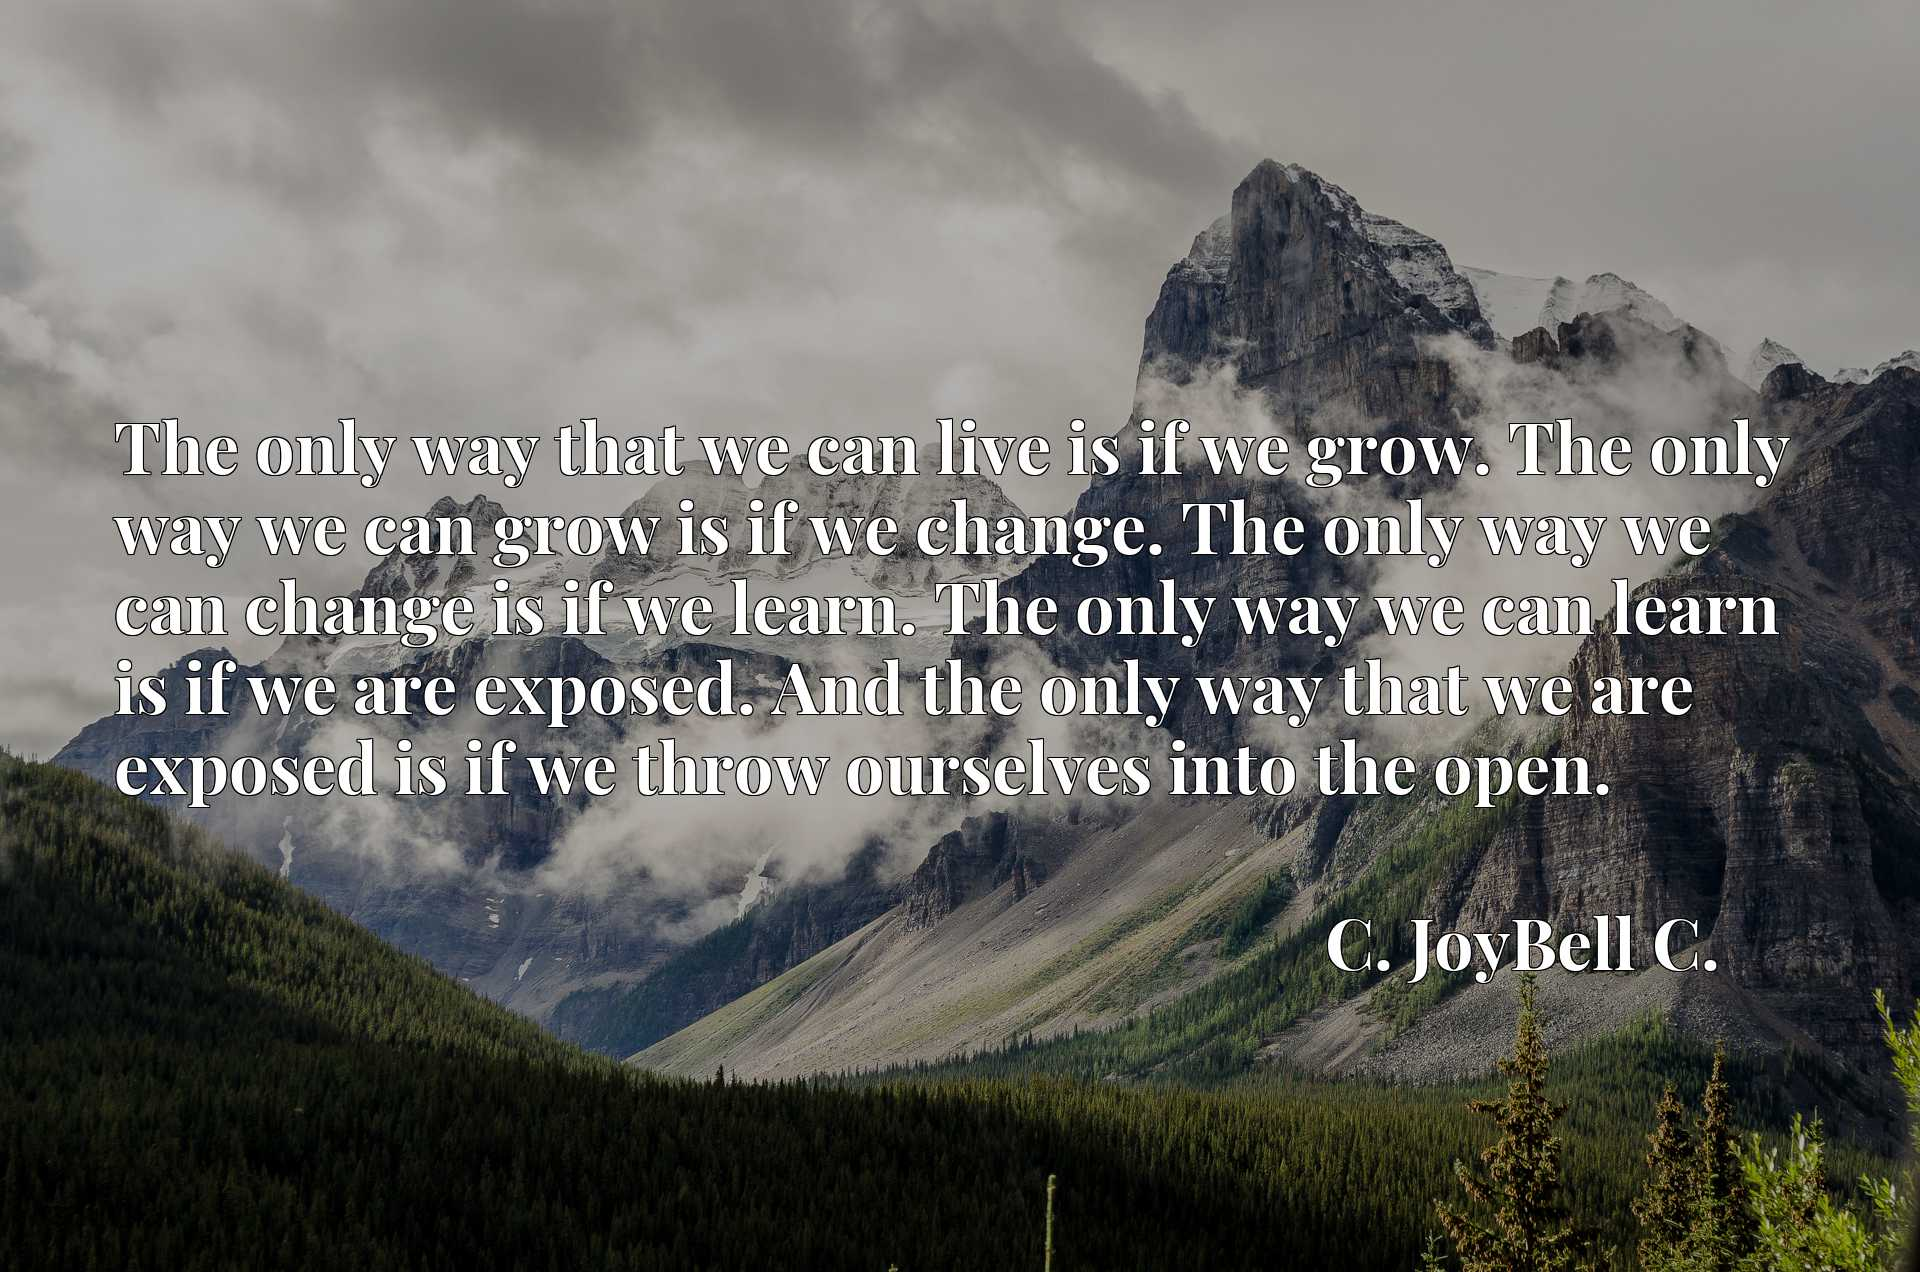 The only way that we can live is if we grow. The only way we can grow is if we change. The only way we can change is if we learn. The only way we can learn is if we are exposed. And the only way that we are exposed is if we throw ourselves into the open.